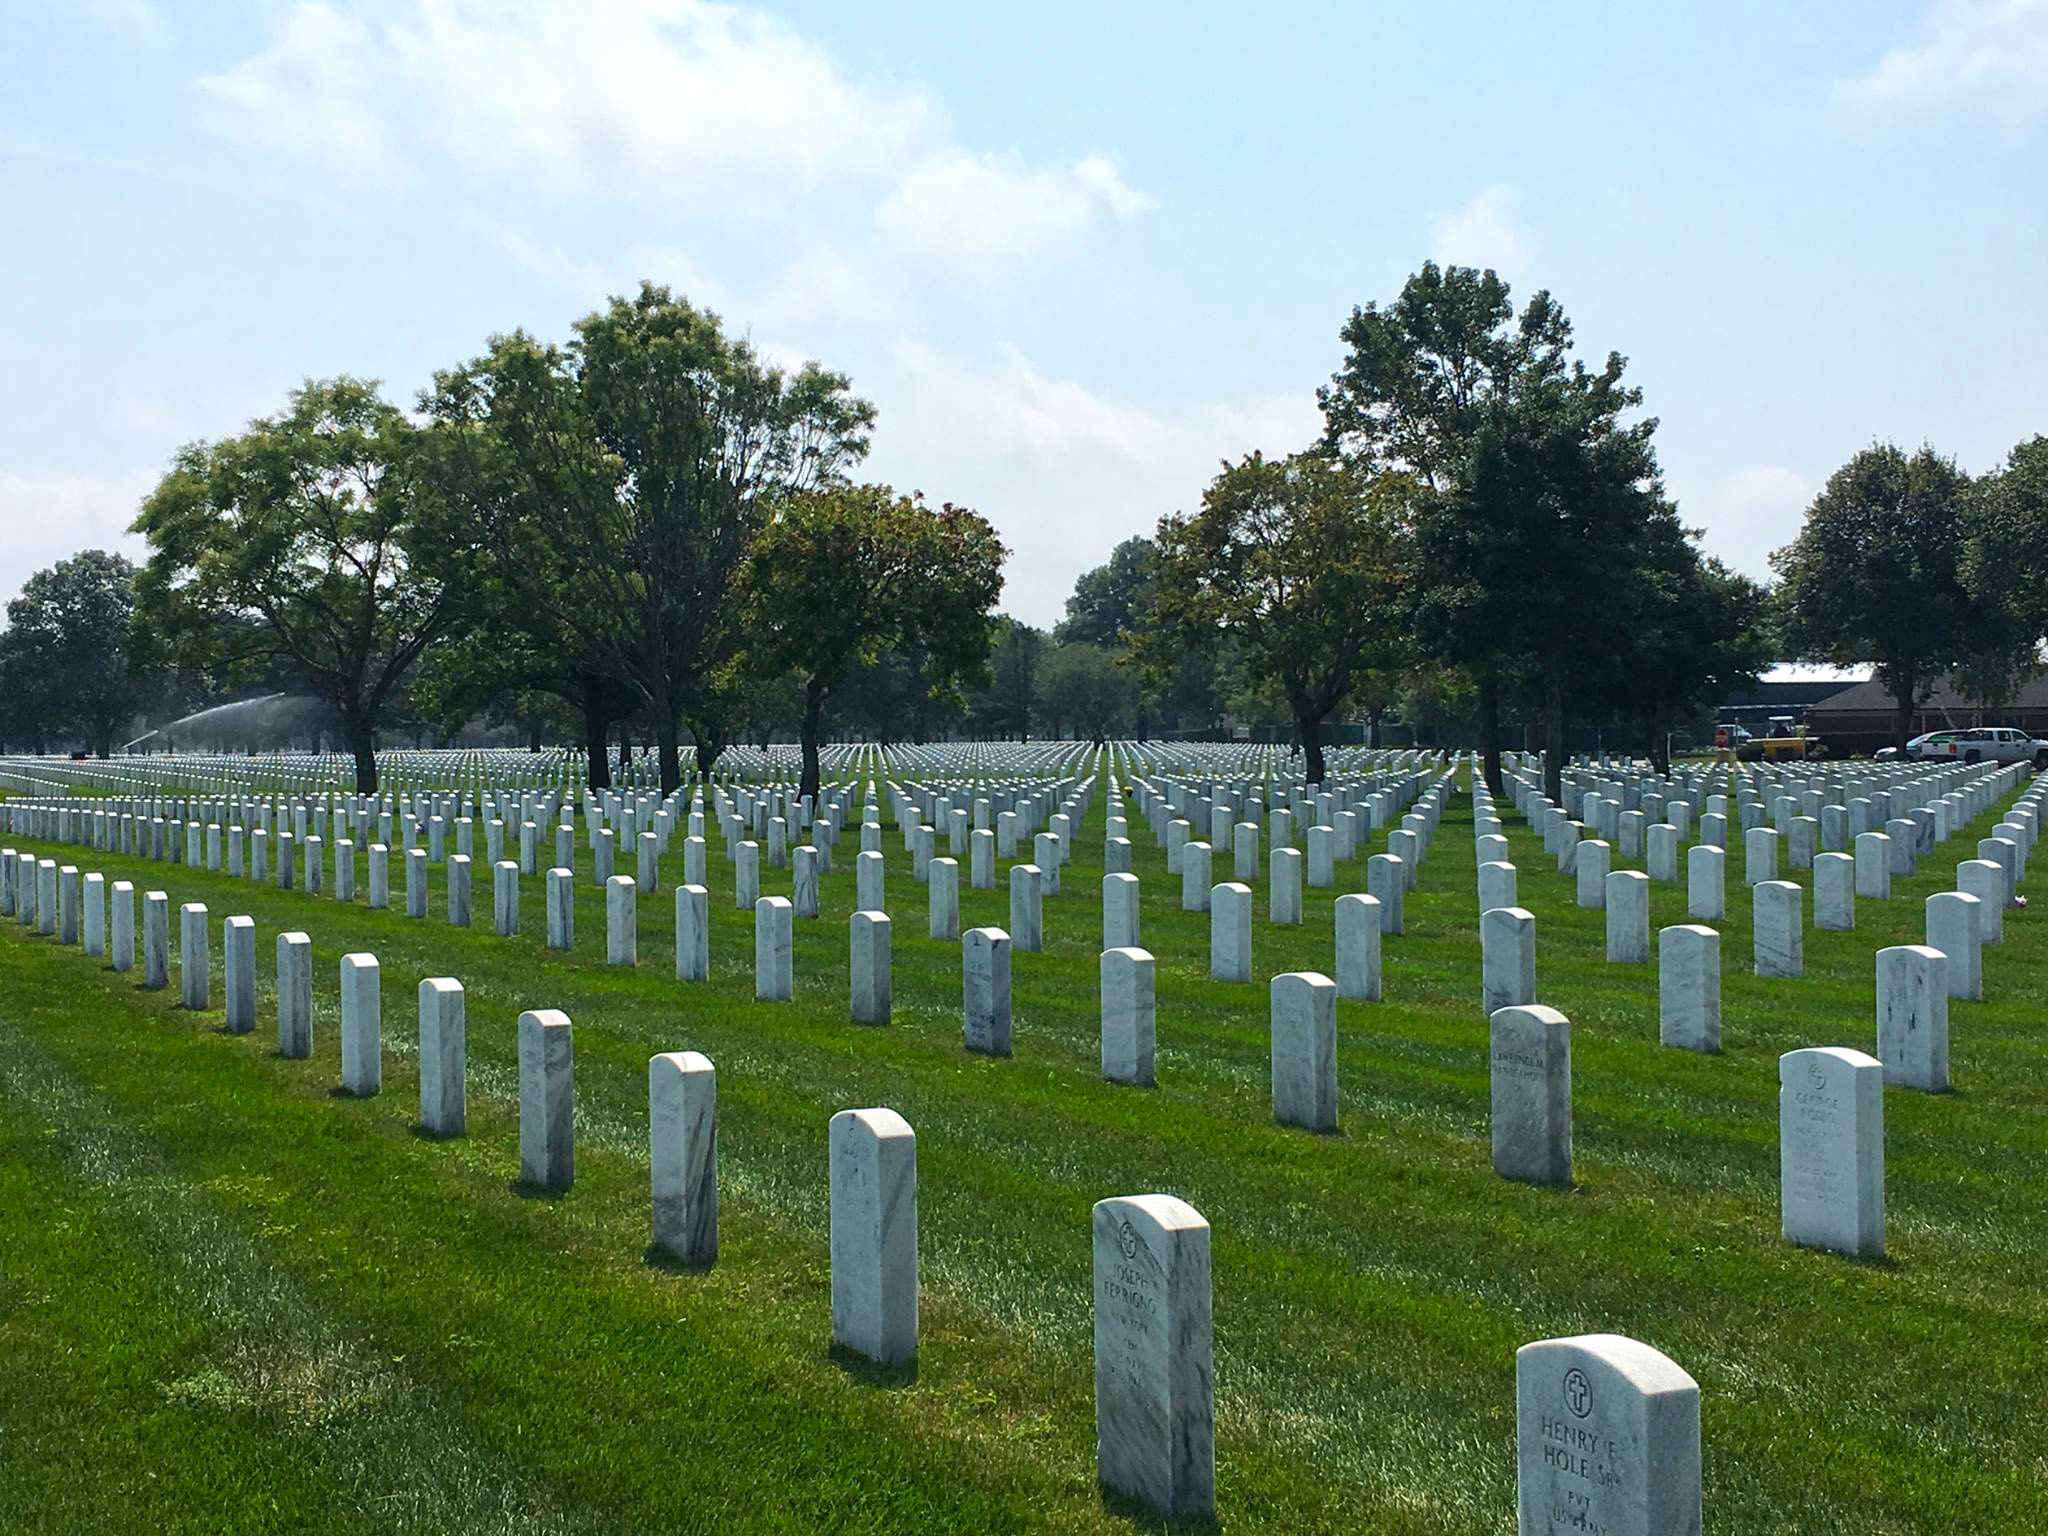 Long Island National Cemetery, Farmingdale, NY - Surnames Cre-Cry